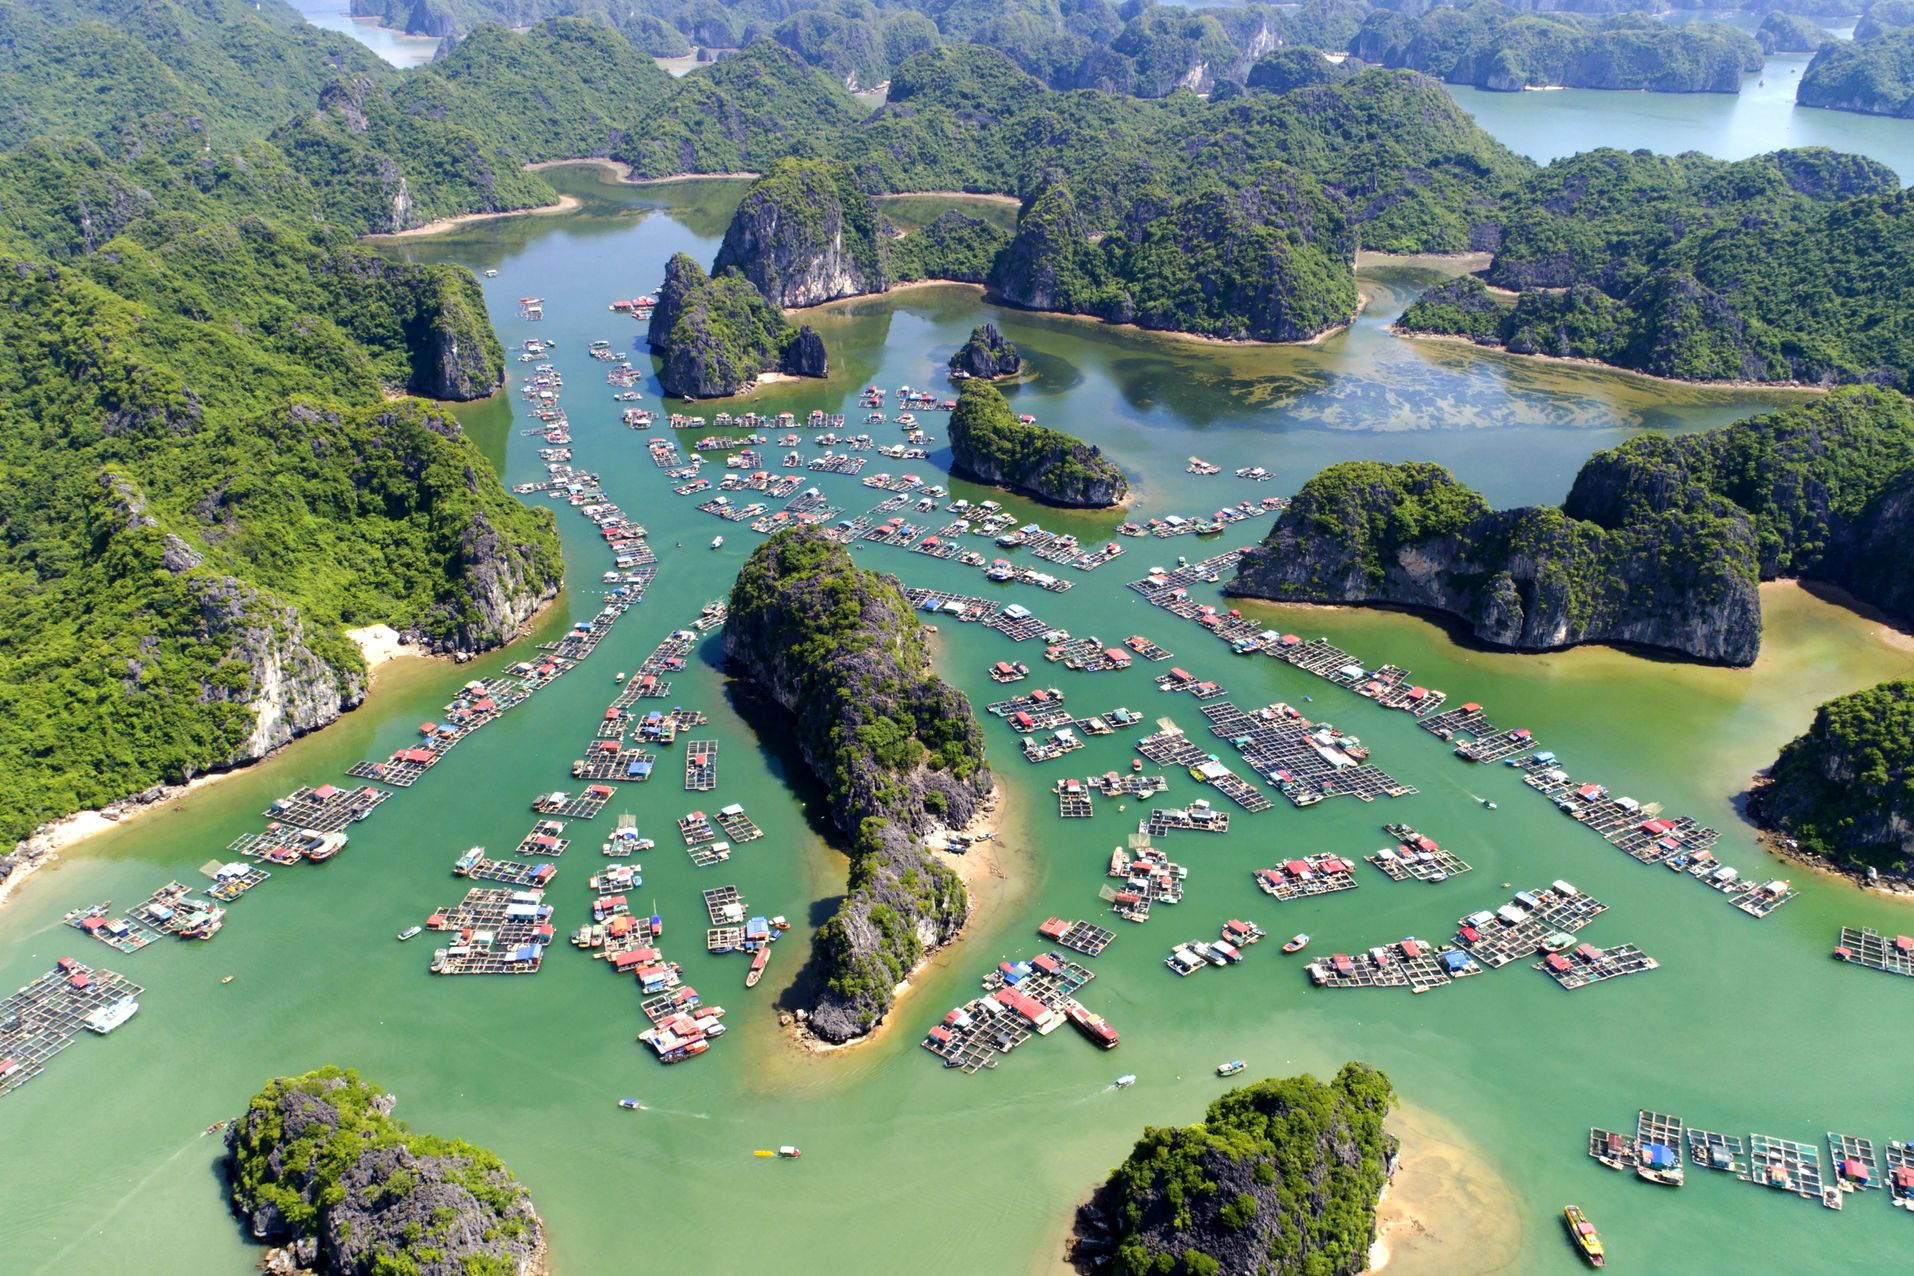 Seven natural wonders of the world: Halong Bay